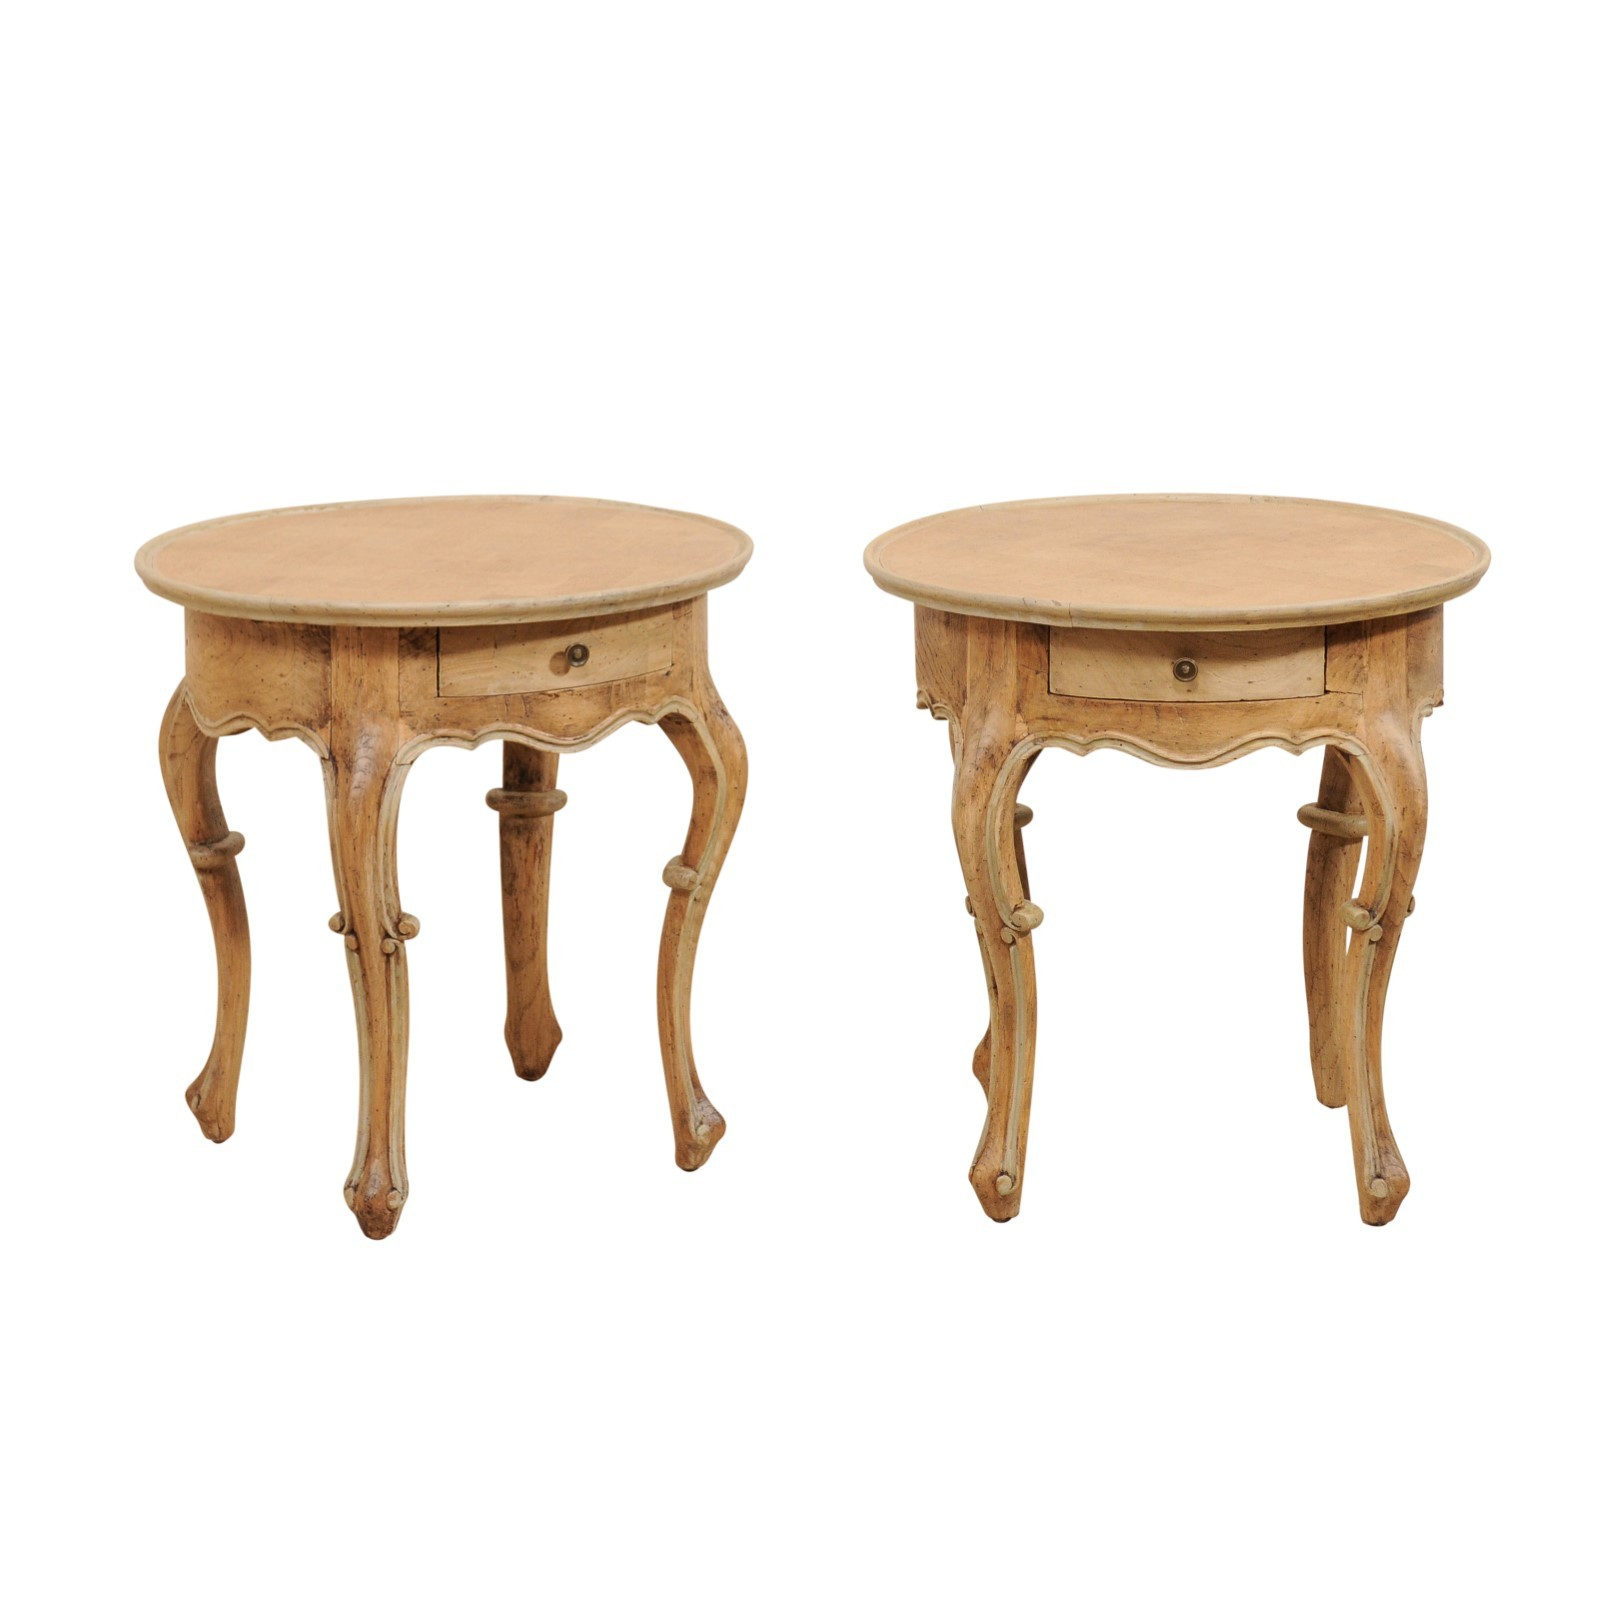 Pair of Round Portuguese Style Tables